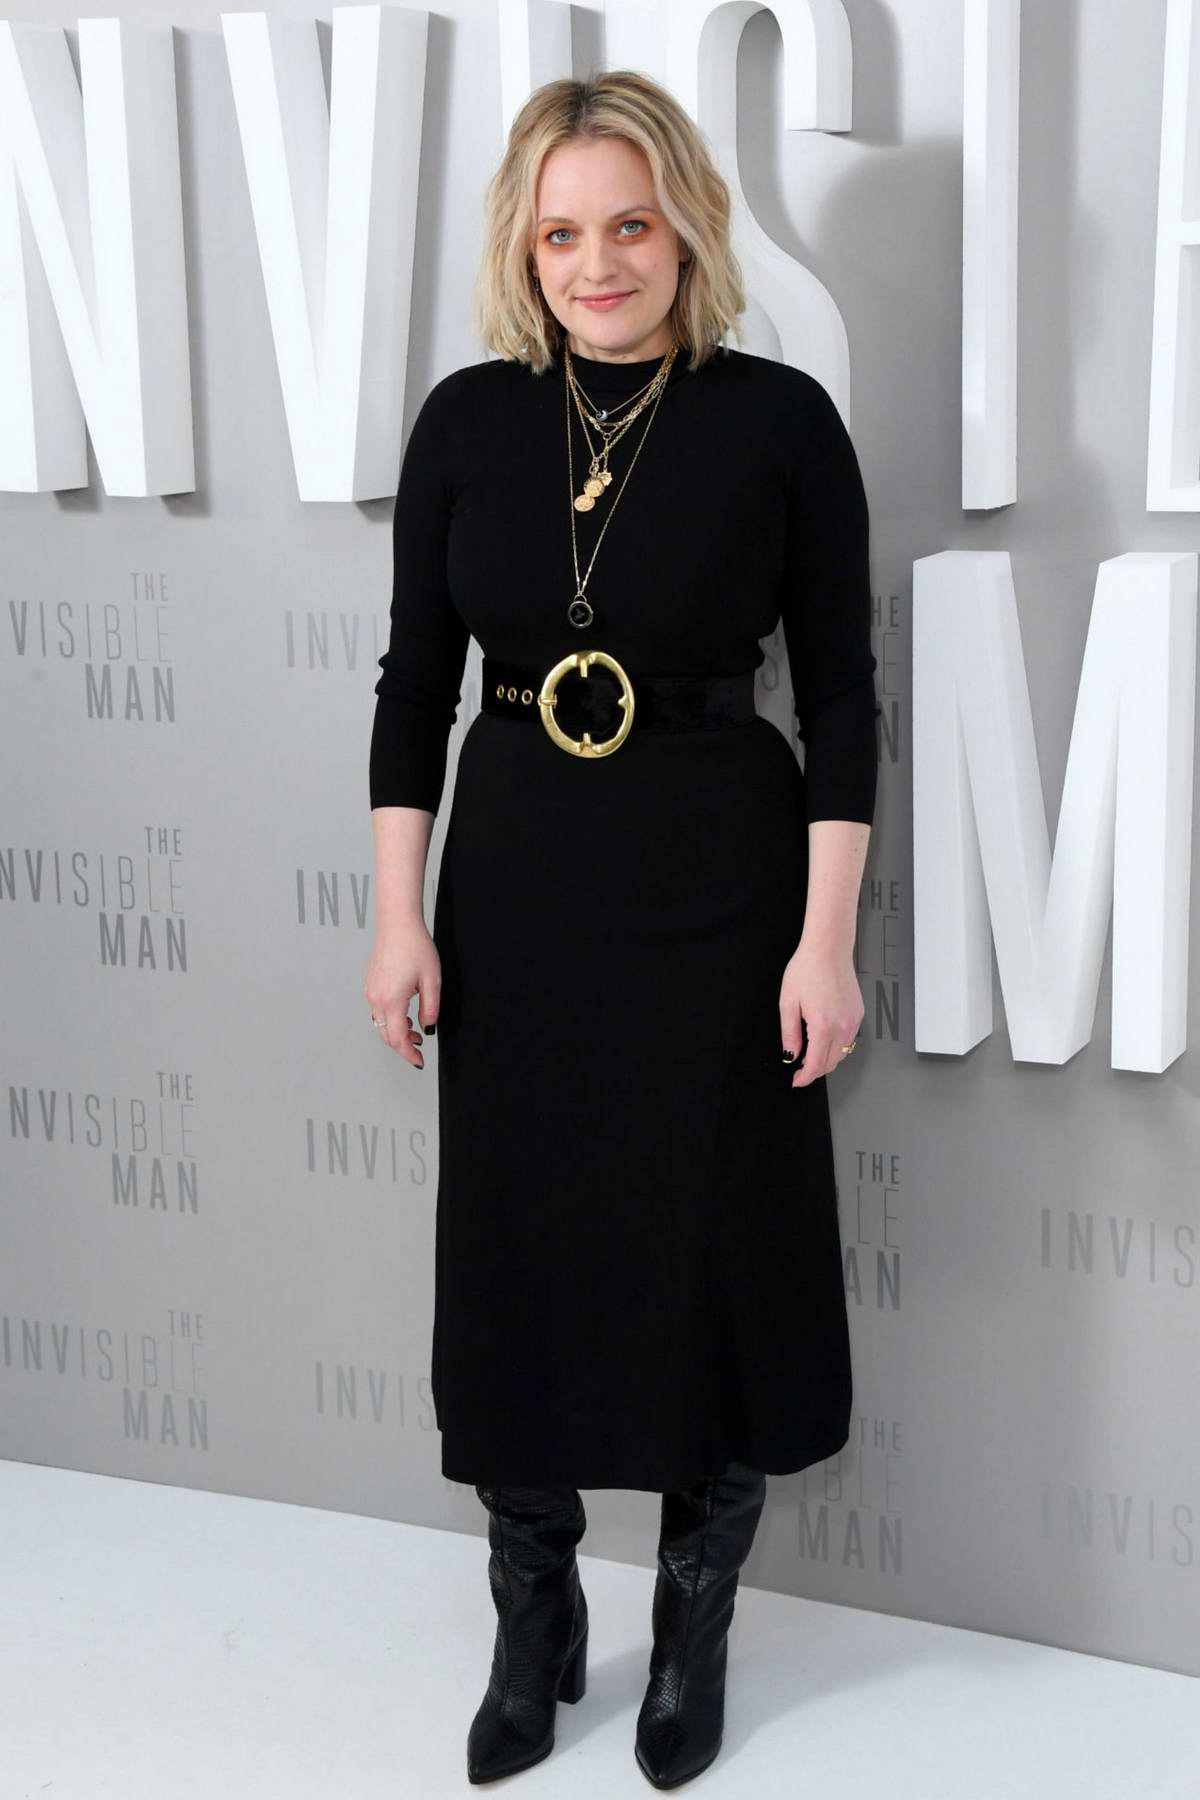 Elisabeth Moss attends UK Premiere of 'The Invisible Man' in London, UK